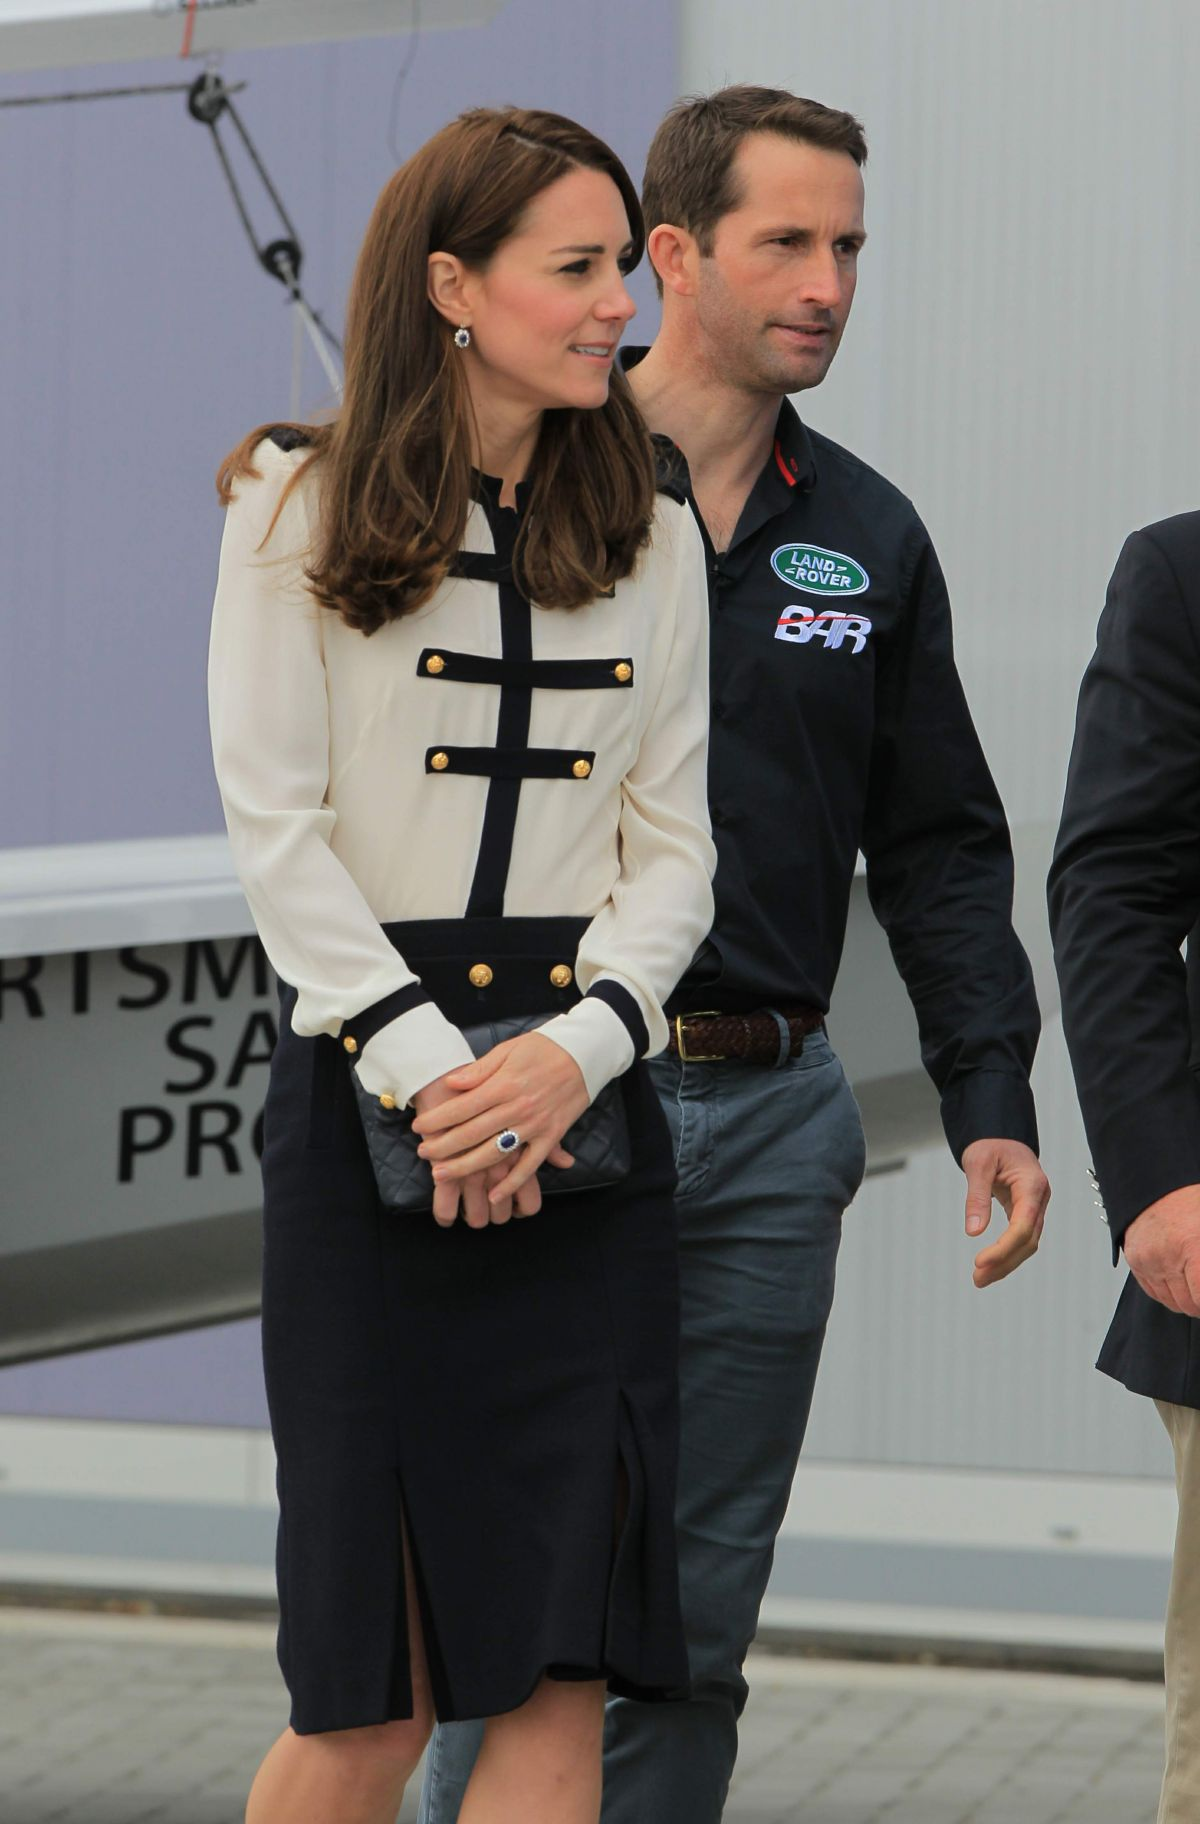 KATE MIDDLETON Visit BAR Land Rover America's Cup Team, May 2016